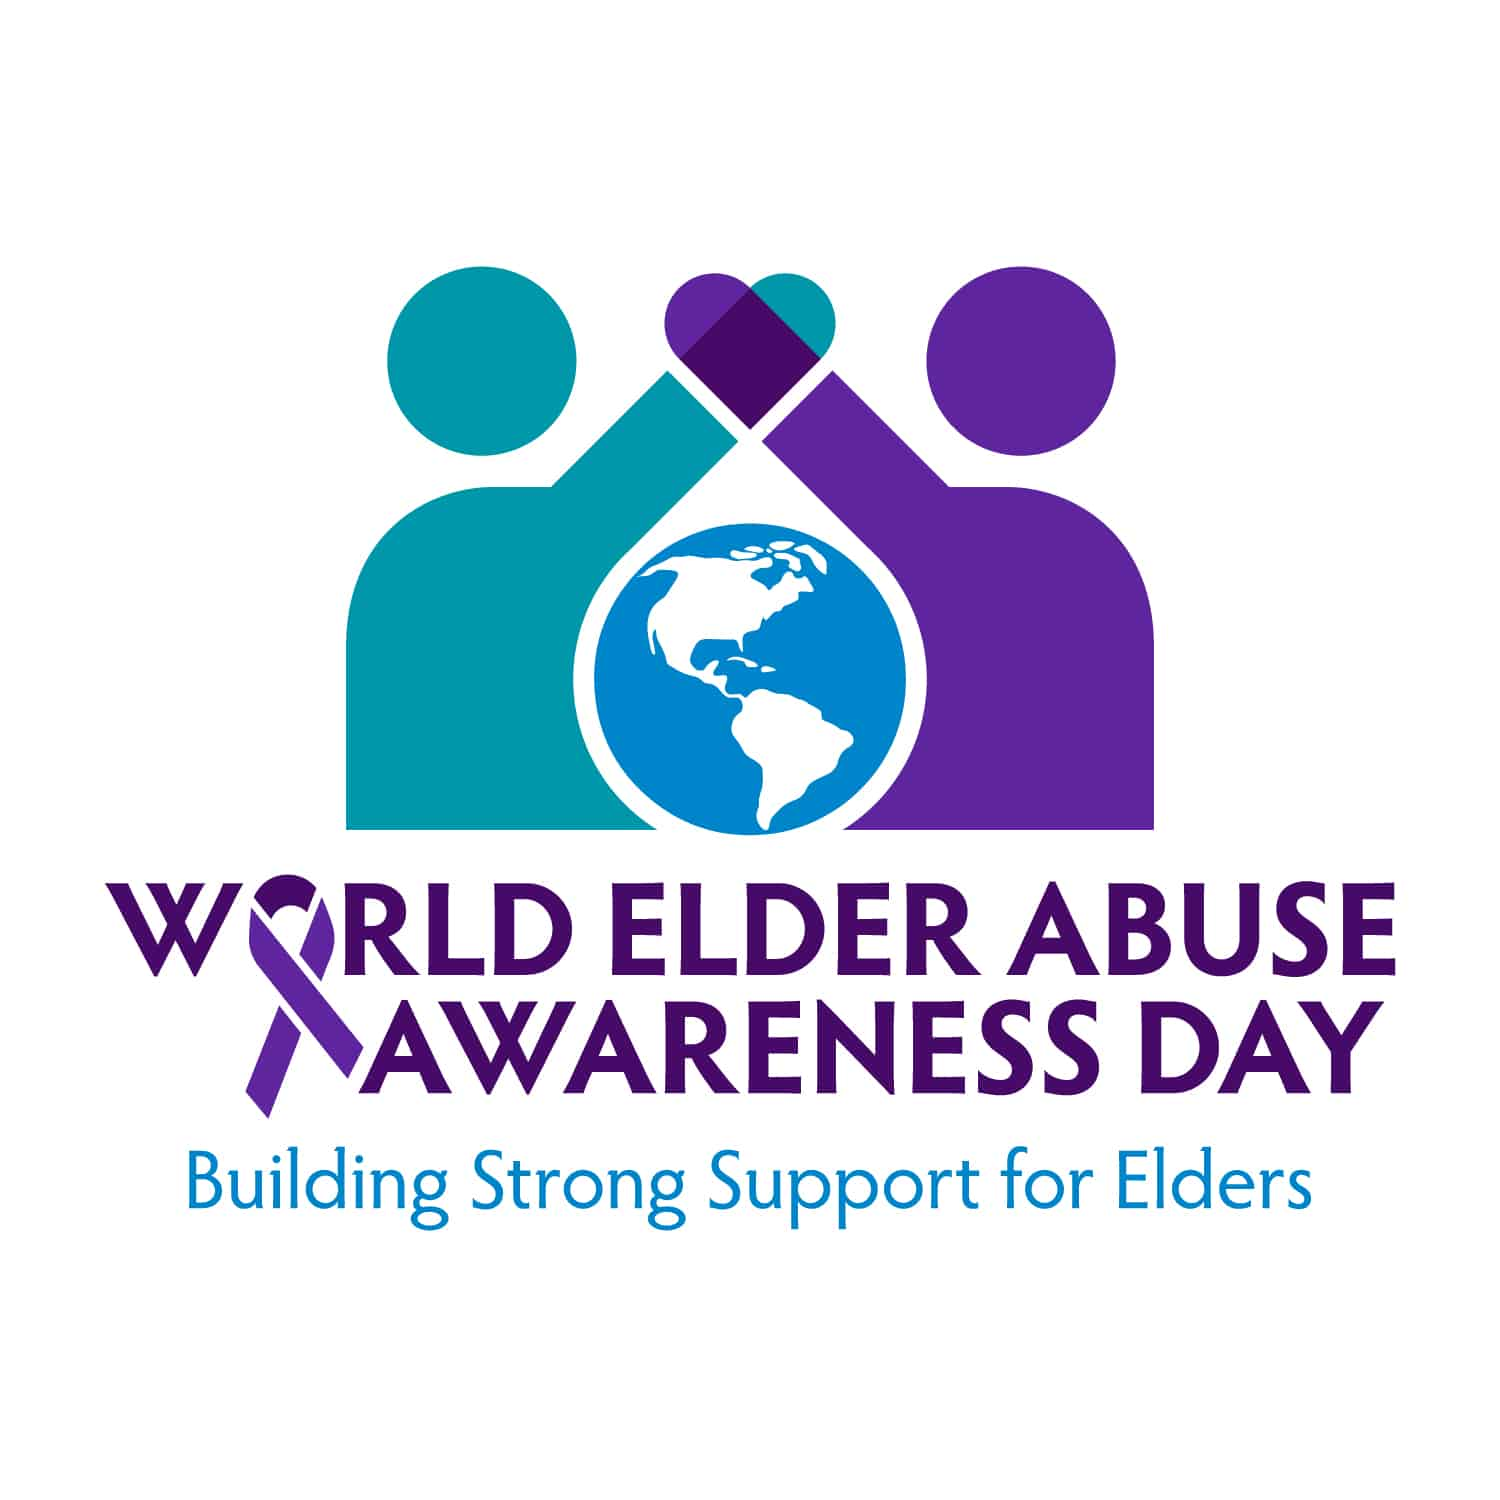 June 15, 2018 — World Elder Abuse Awareness Day